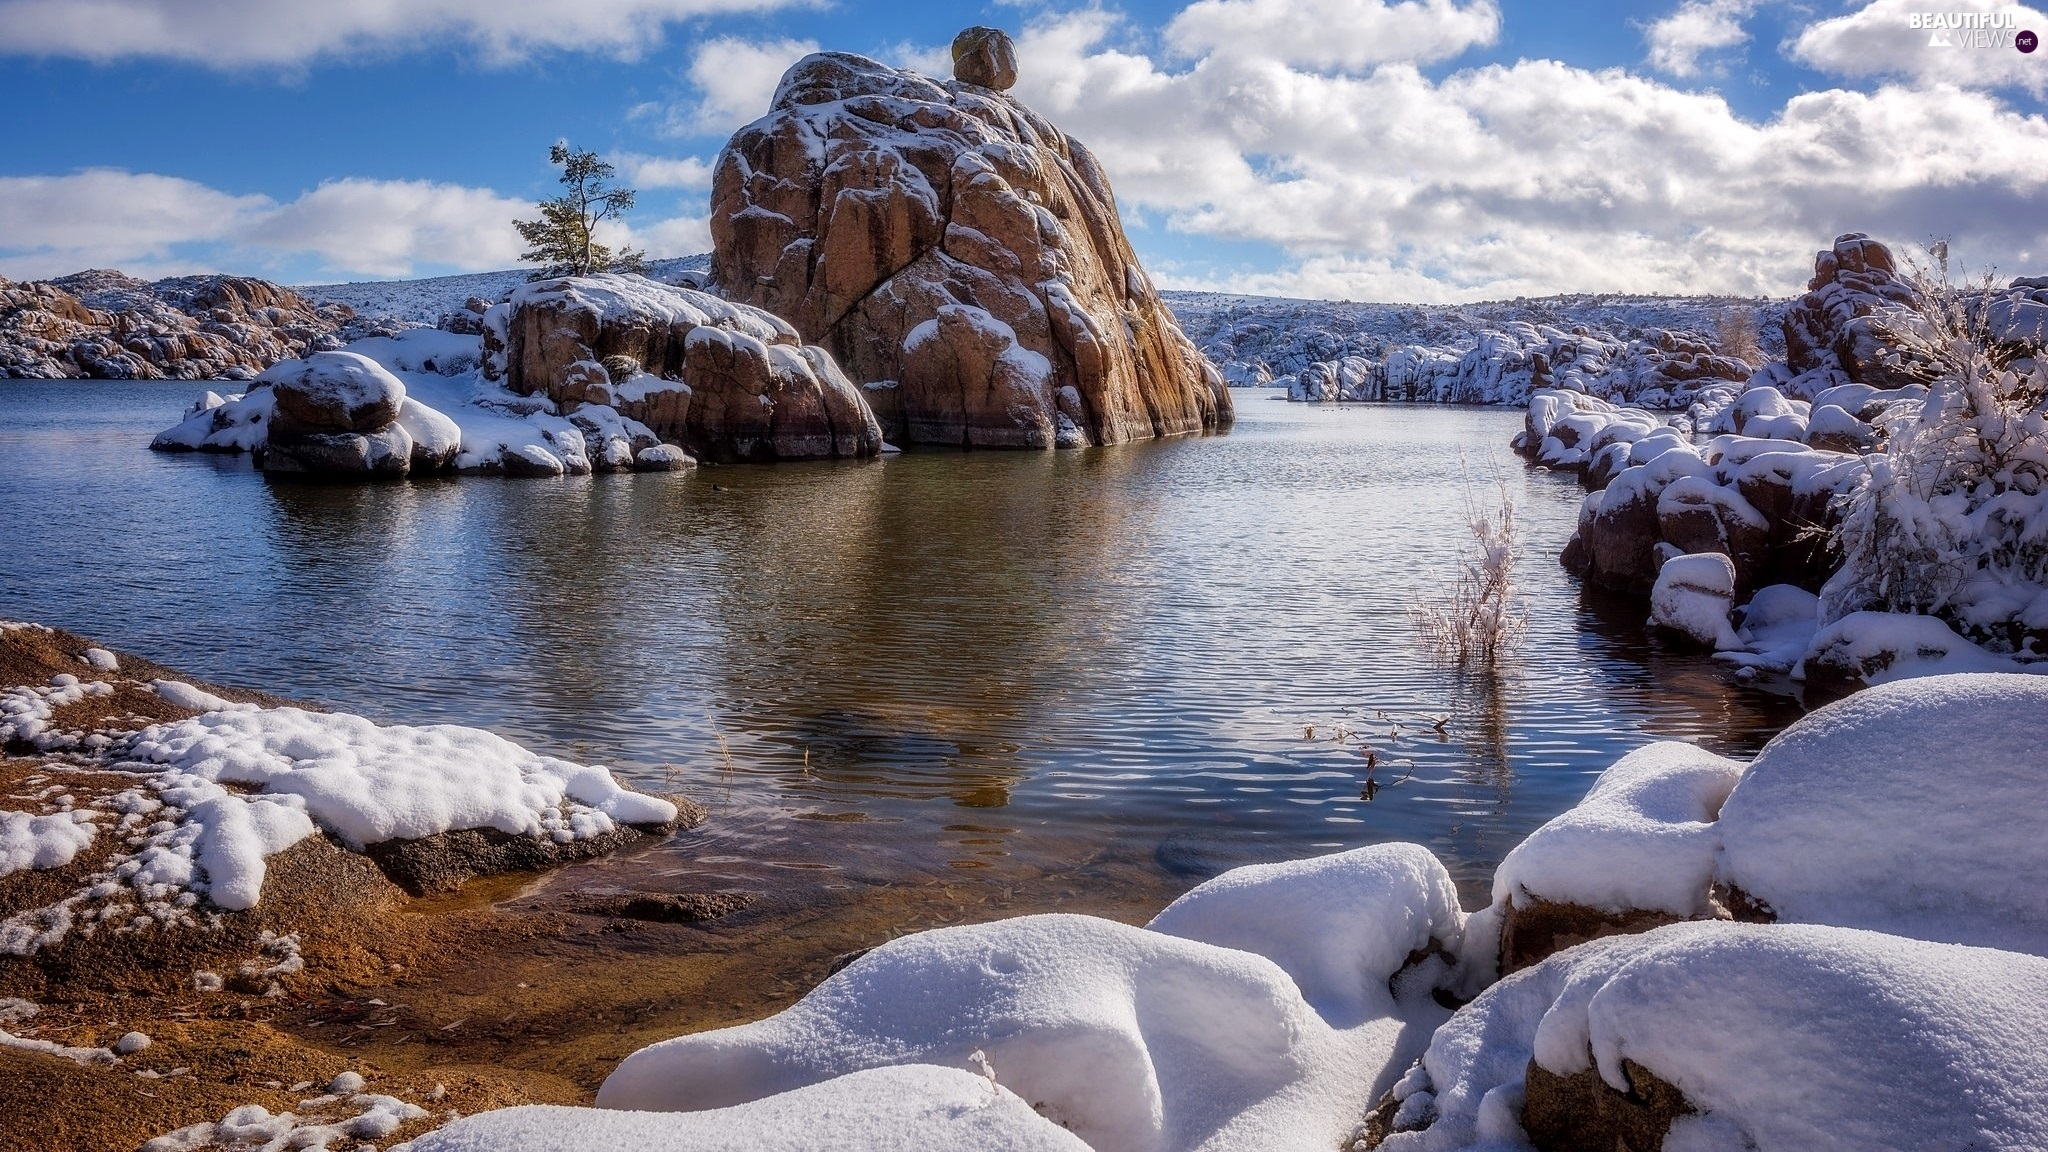 snow, trees, lake, rocks, winter